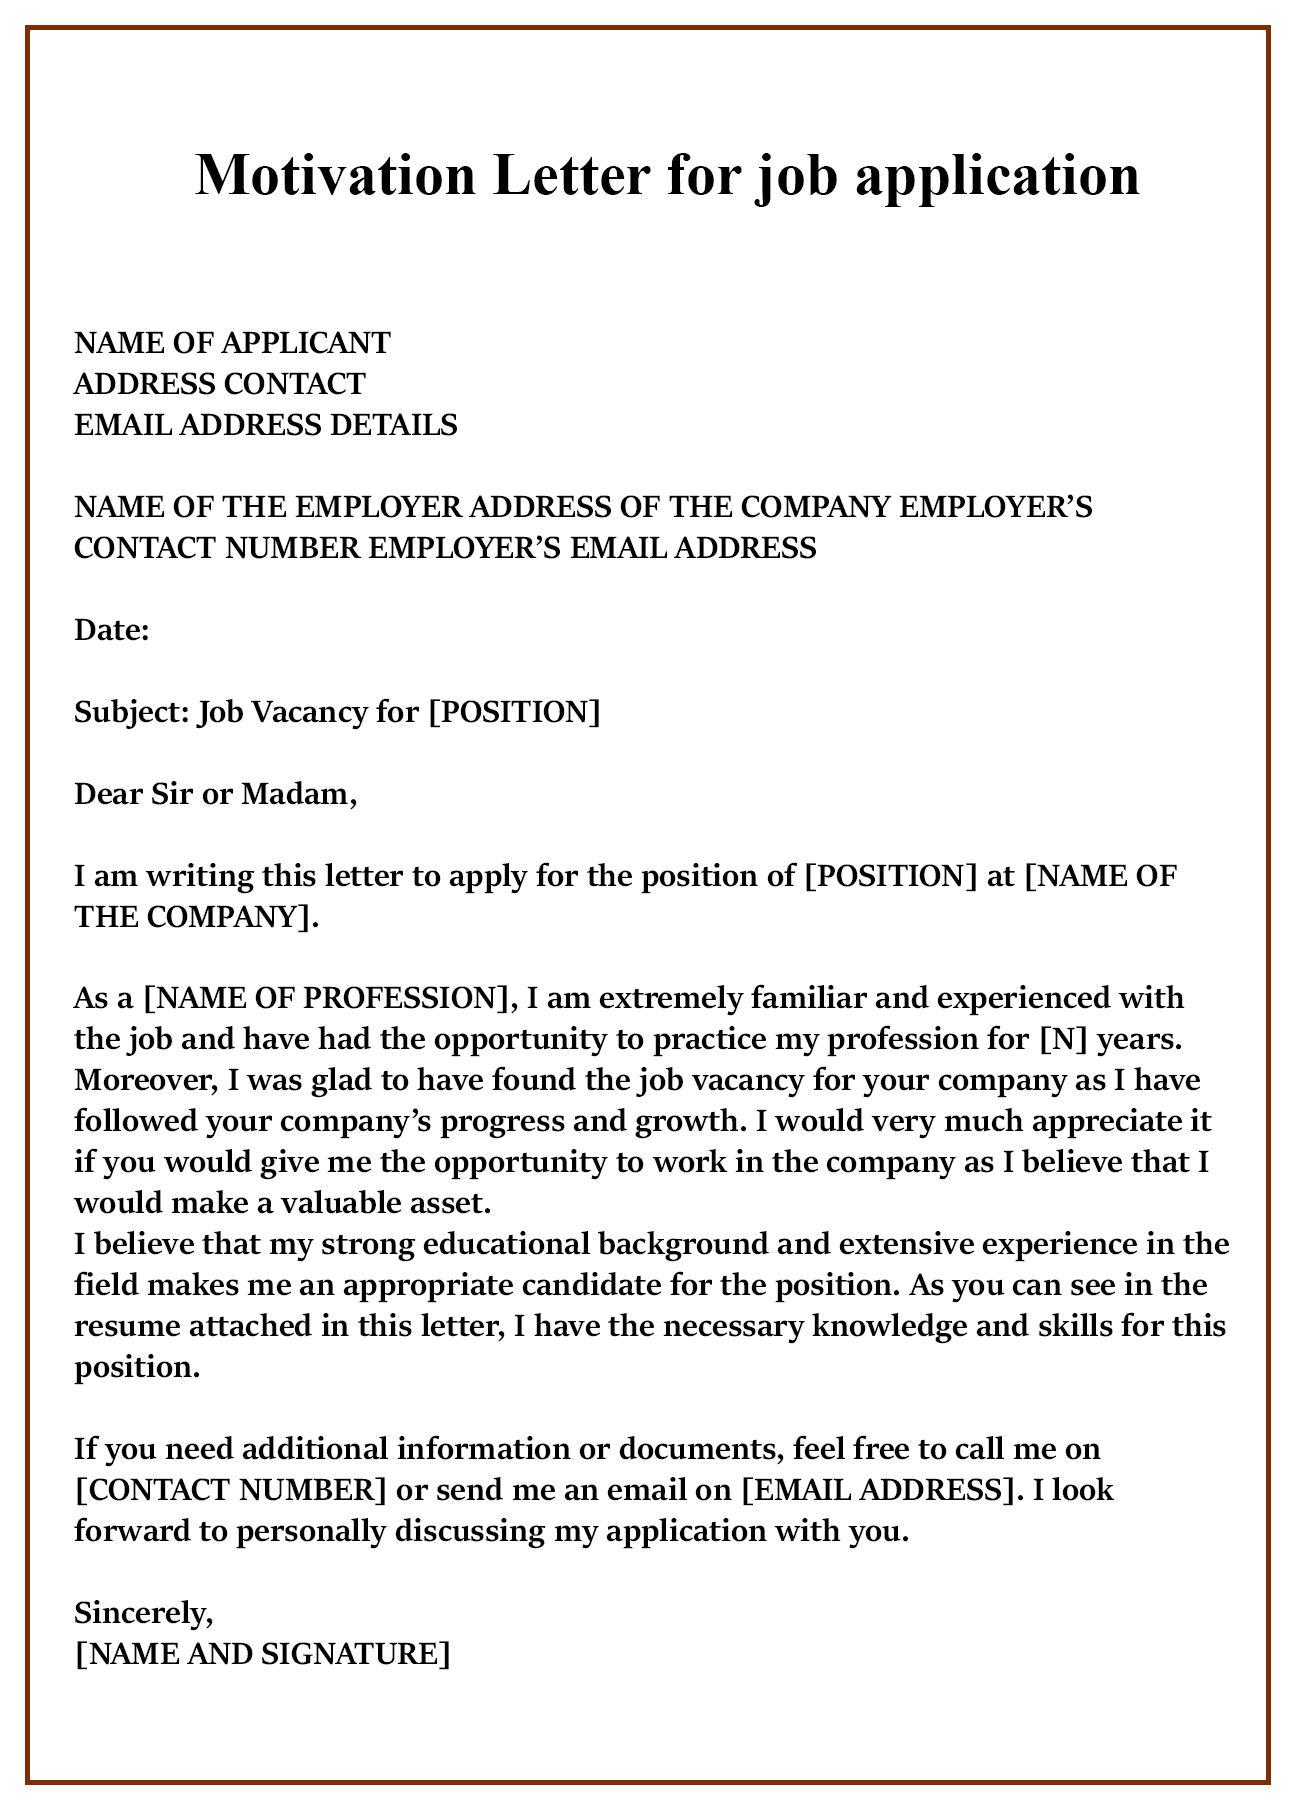 Free Sample Motivation Letter For Job Application Templates